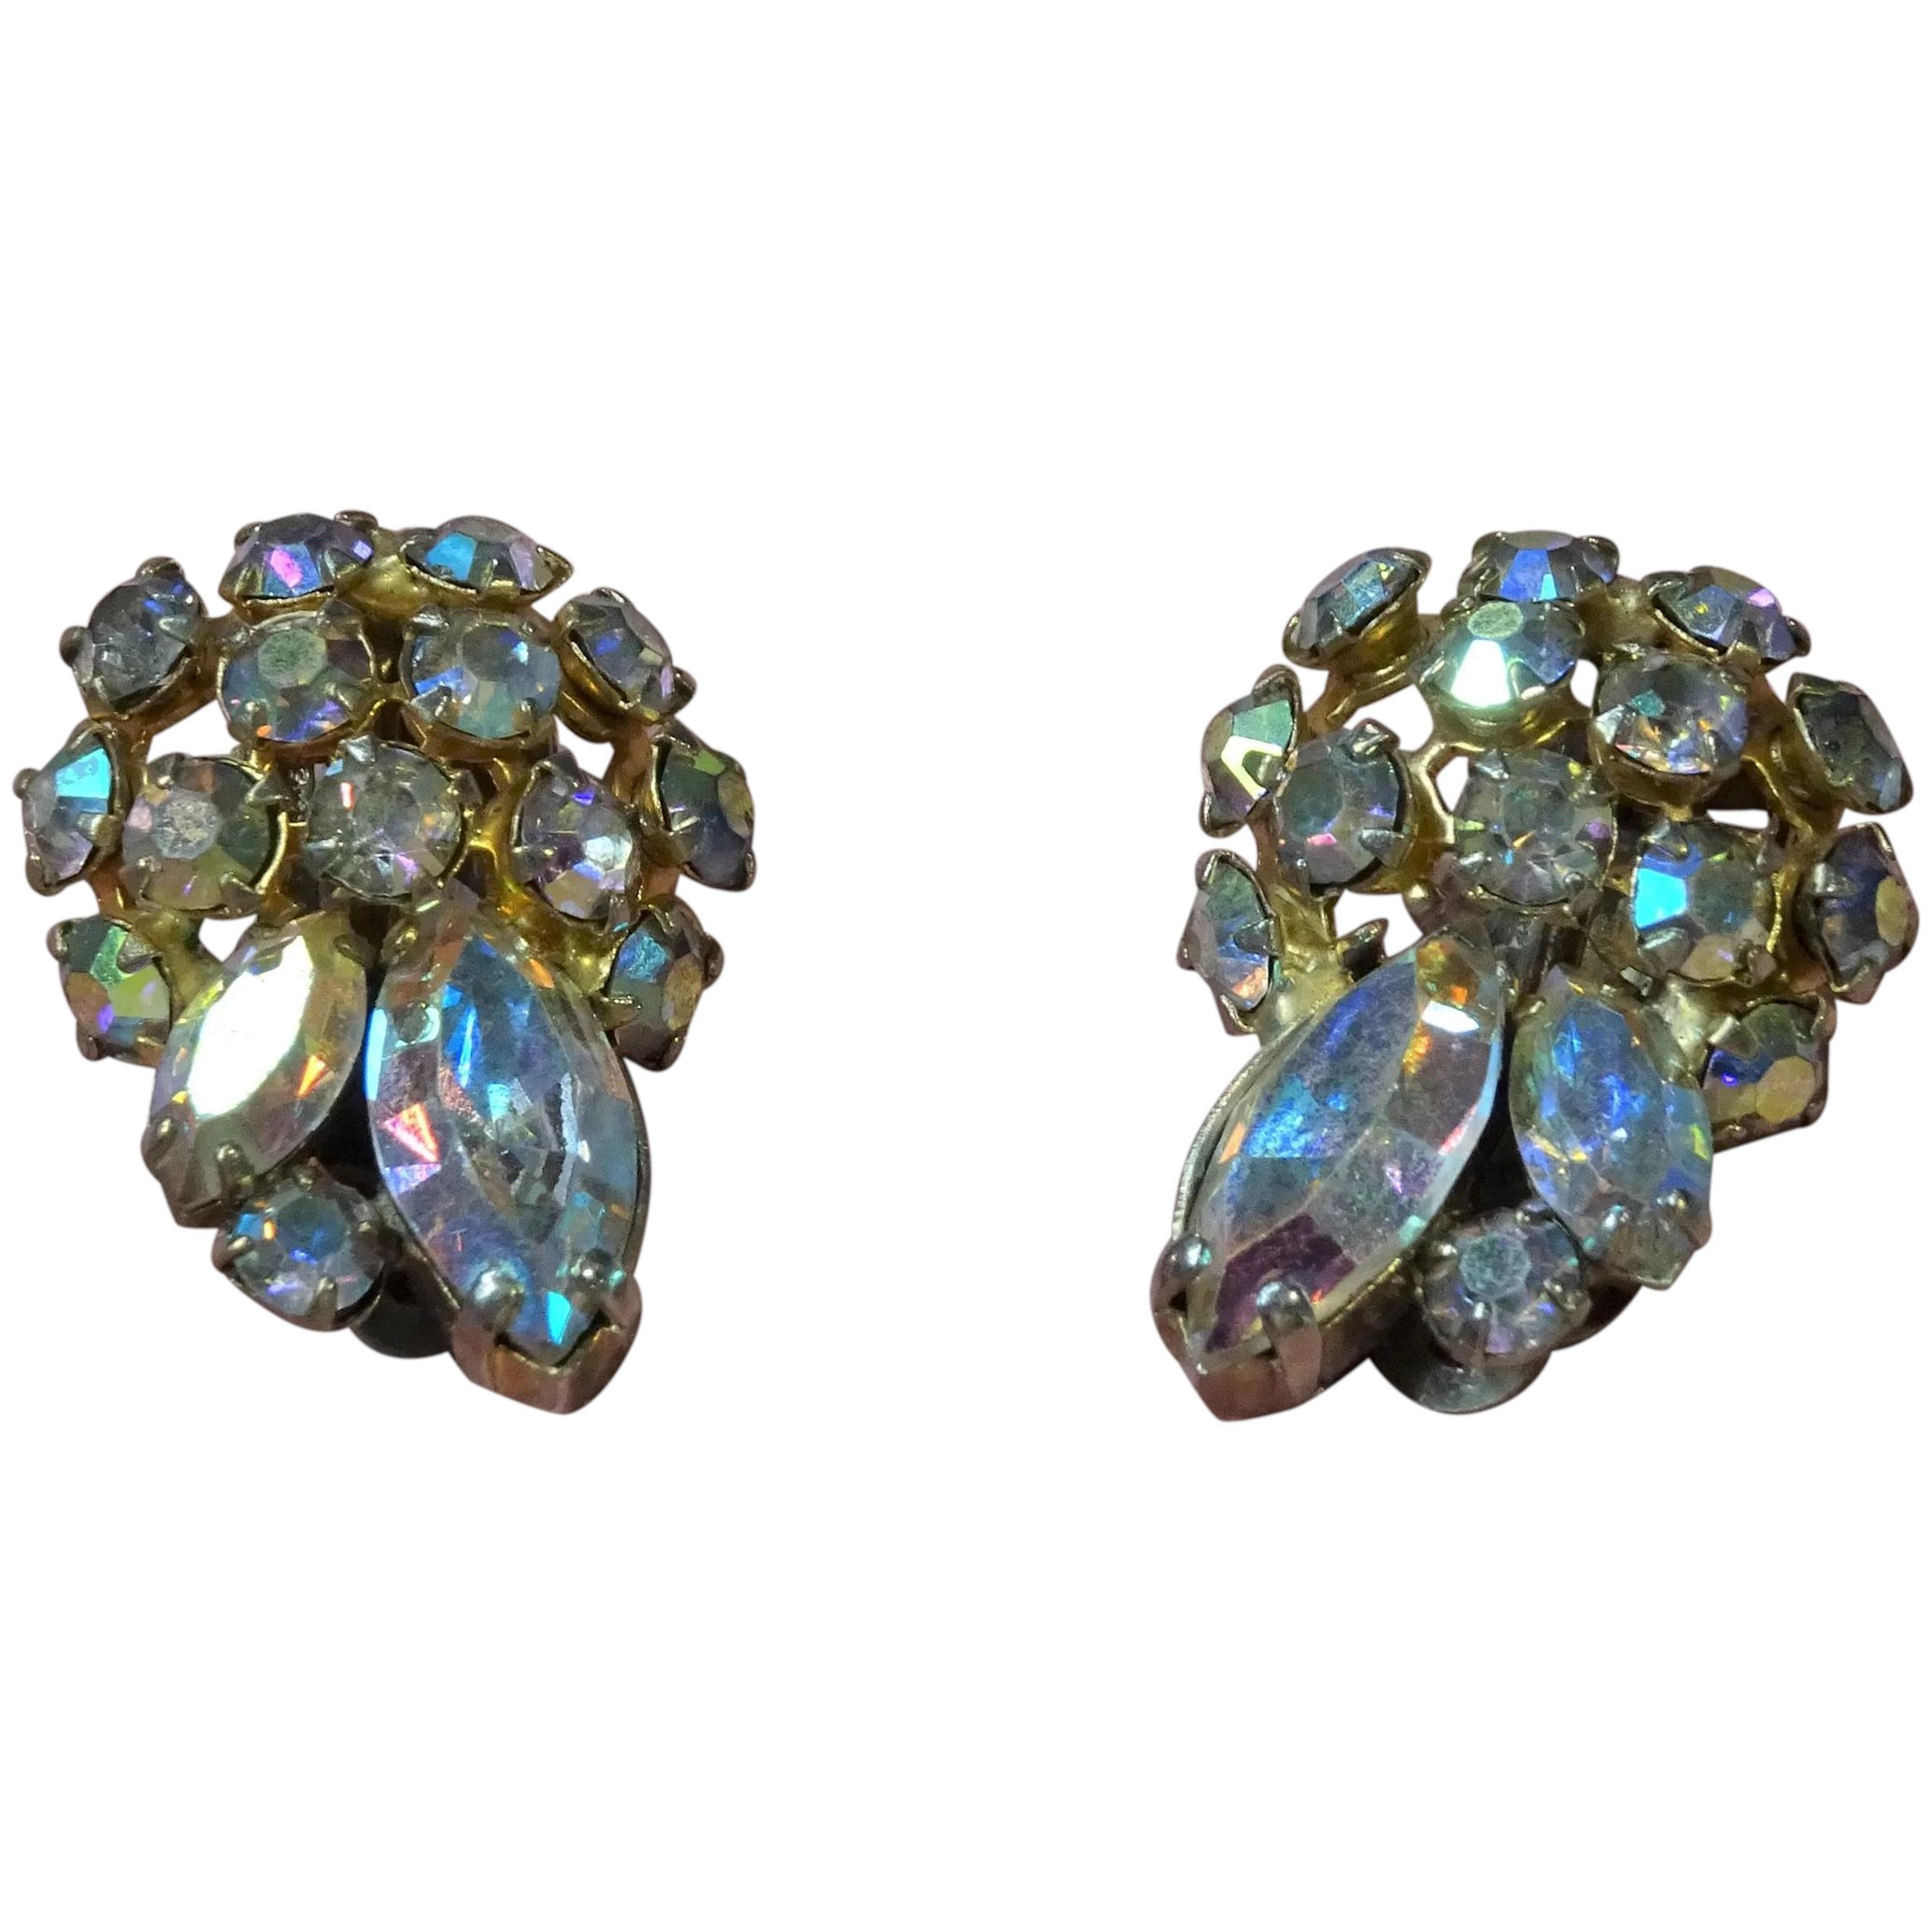 Lovely Crystal Heart Aurora Borealis Dangle Clip-On Earrings Circa 1950/'s Vintage CRYSTAL HEART EARRINGS Excellent Vintage Condition!!